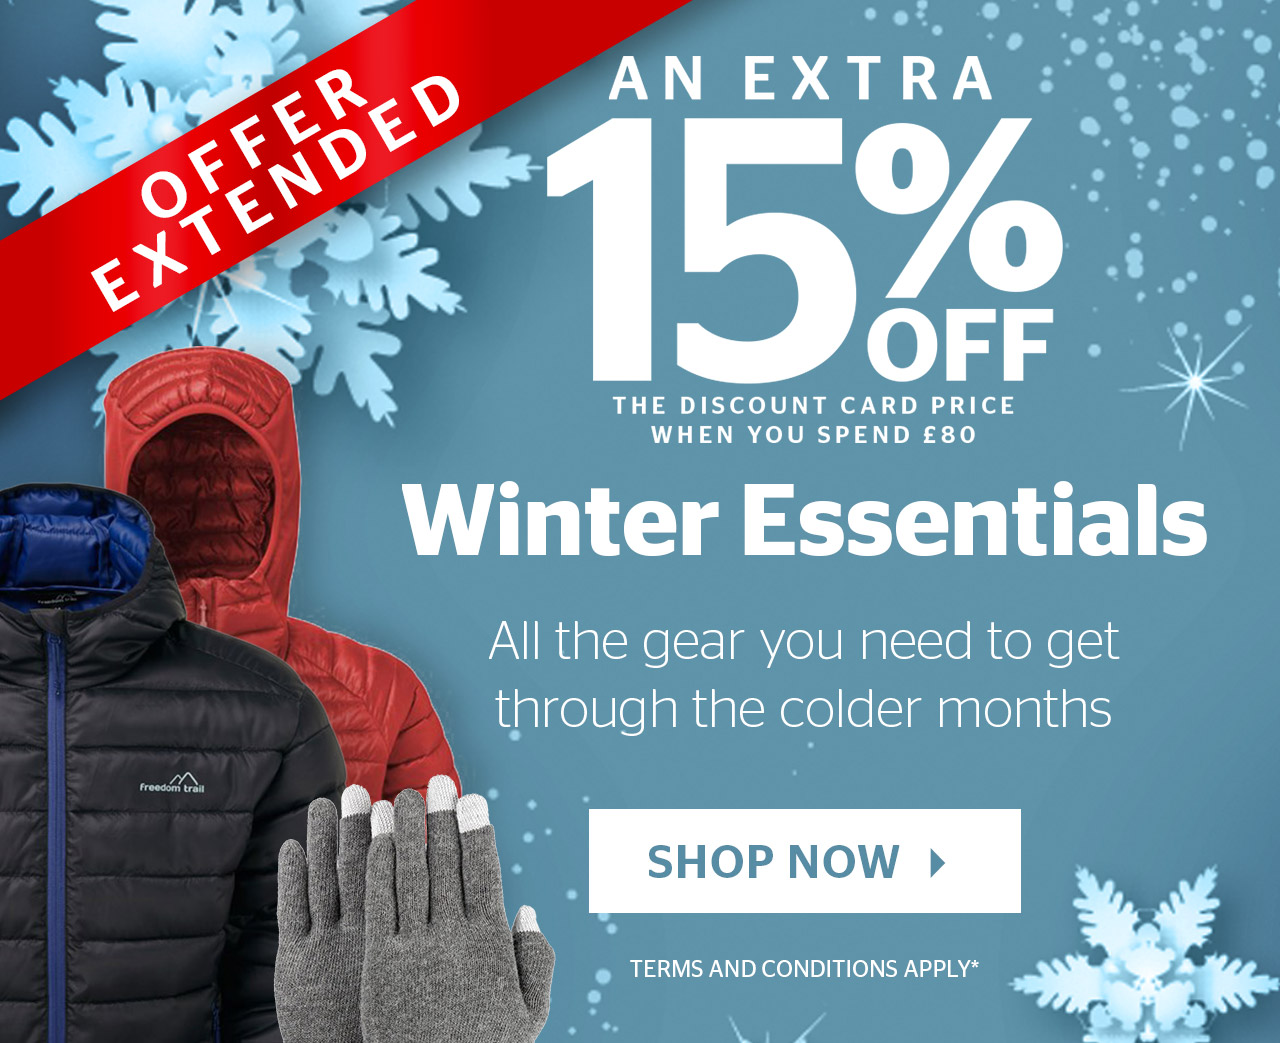 An Extra 15% Off Winter Essentials